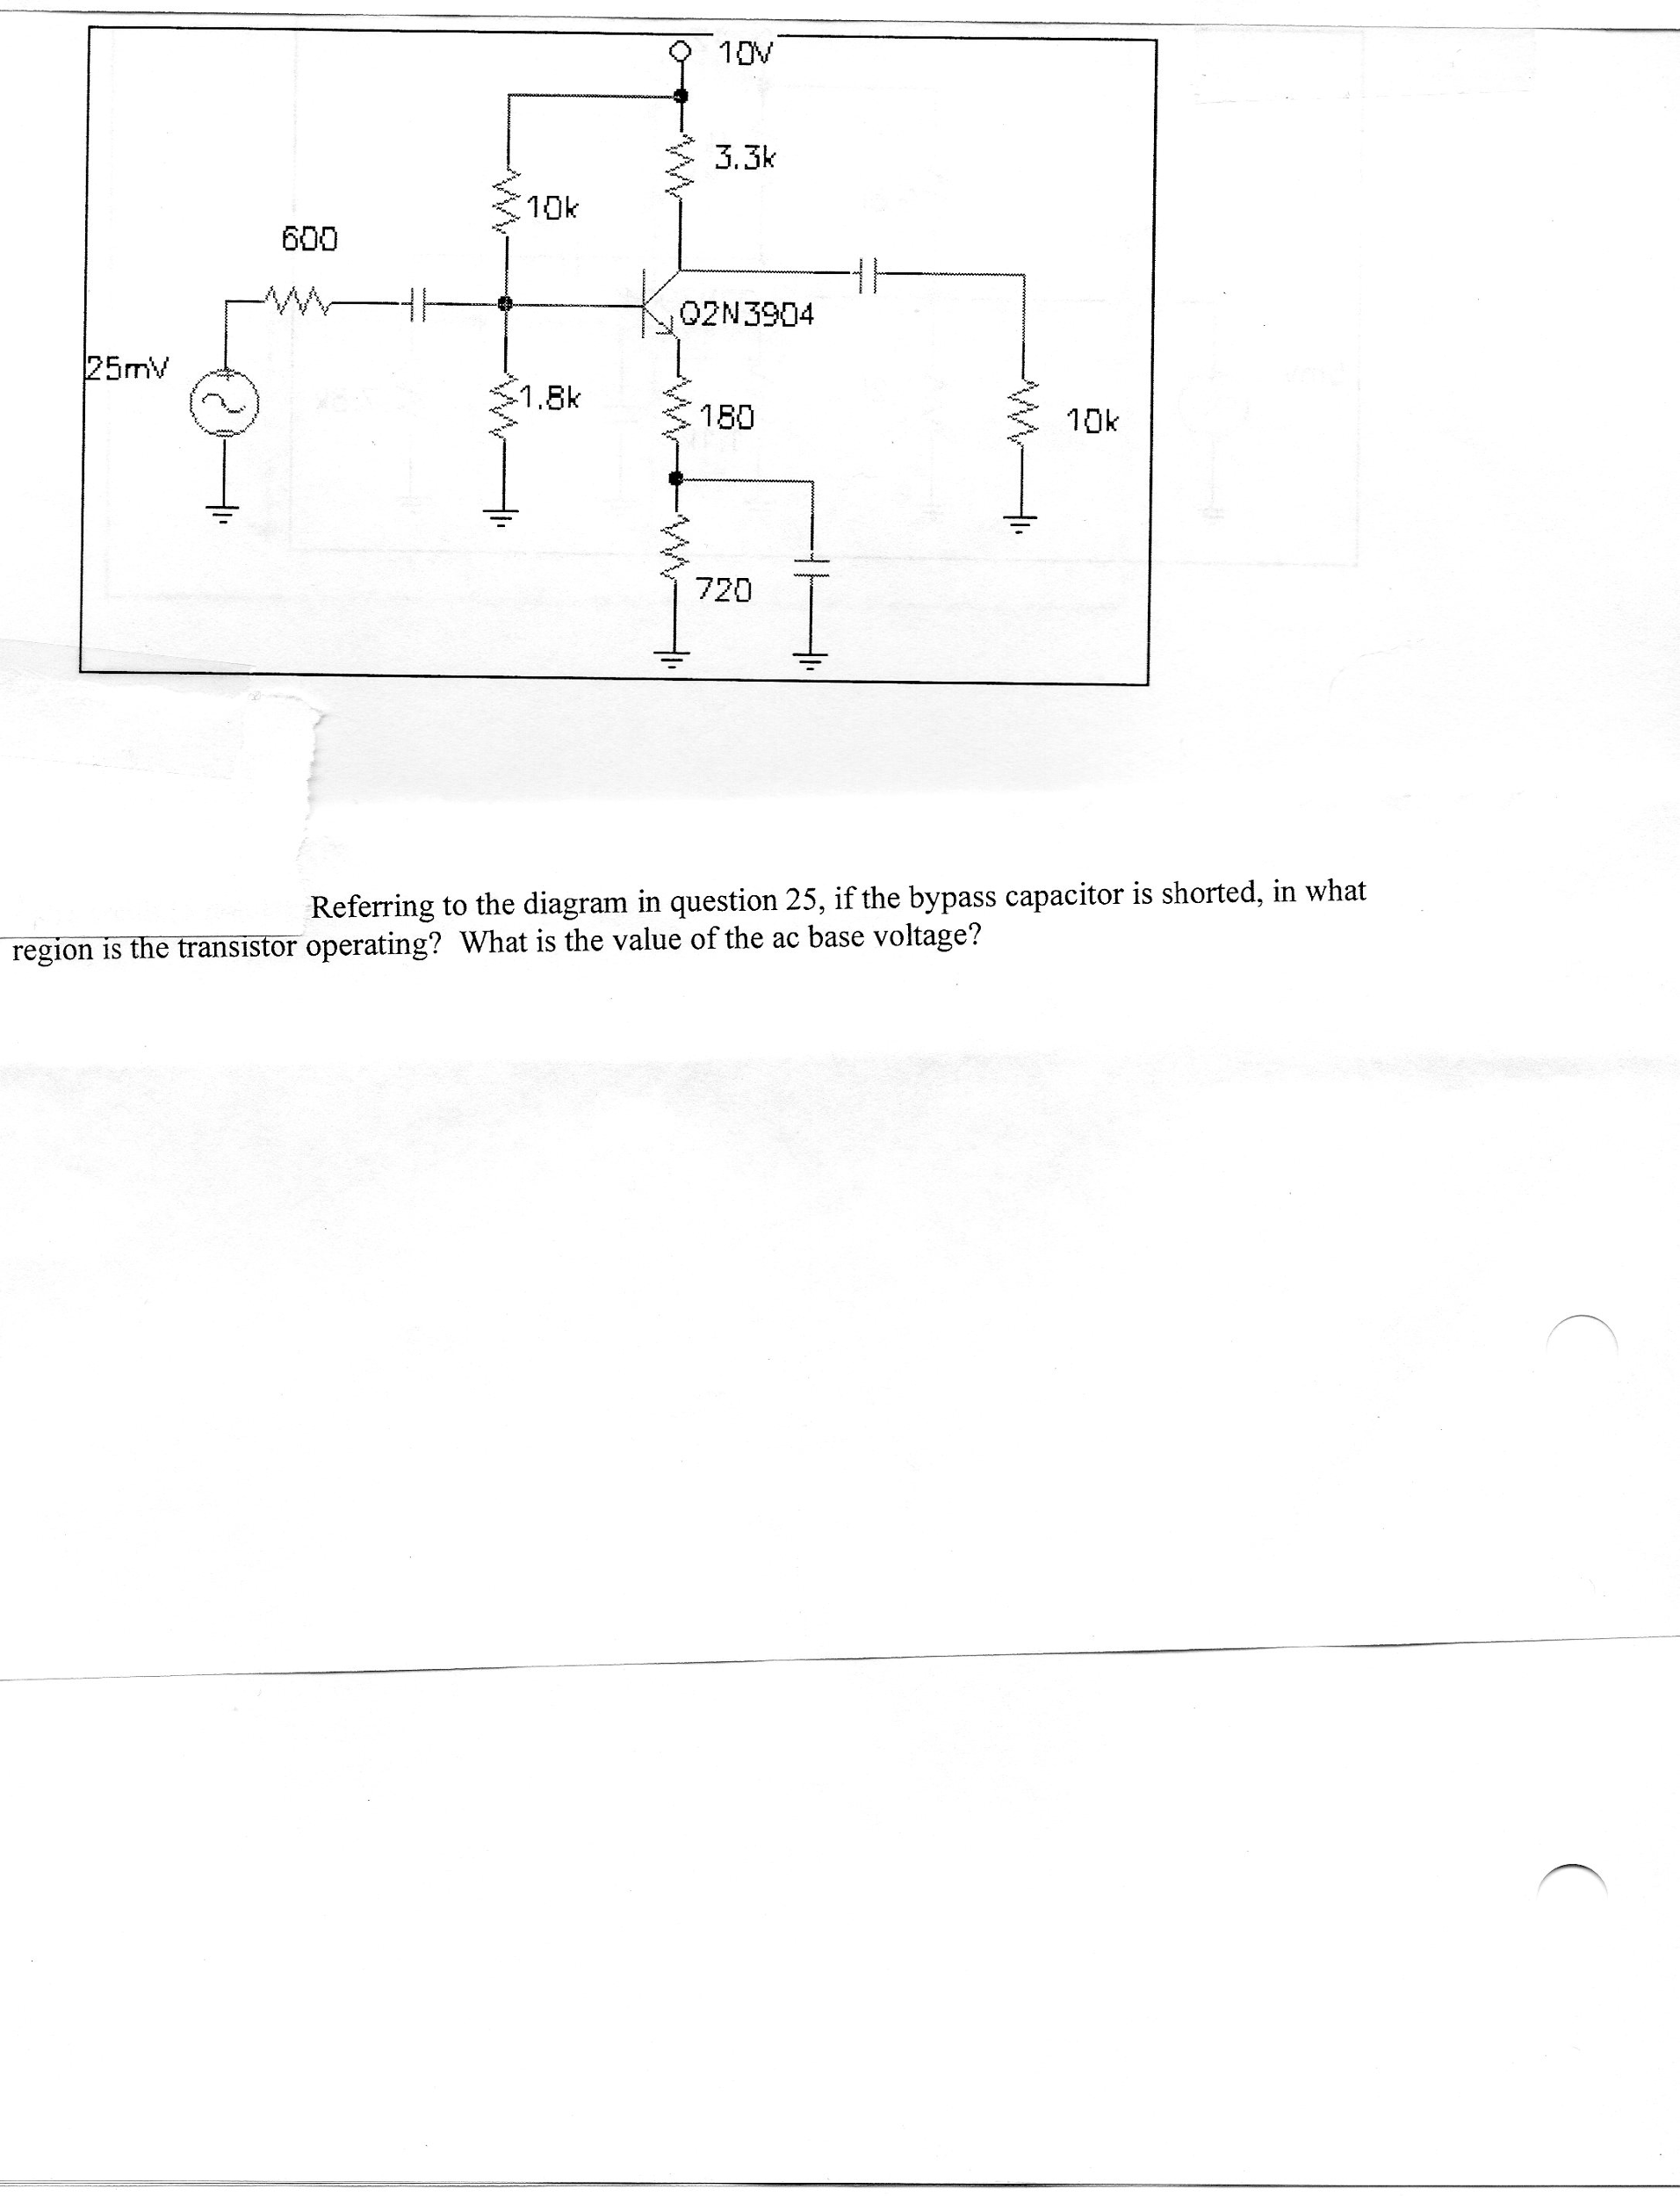 Referring to the diagram in question 25, if the by